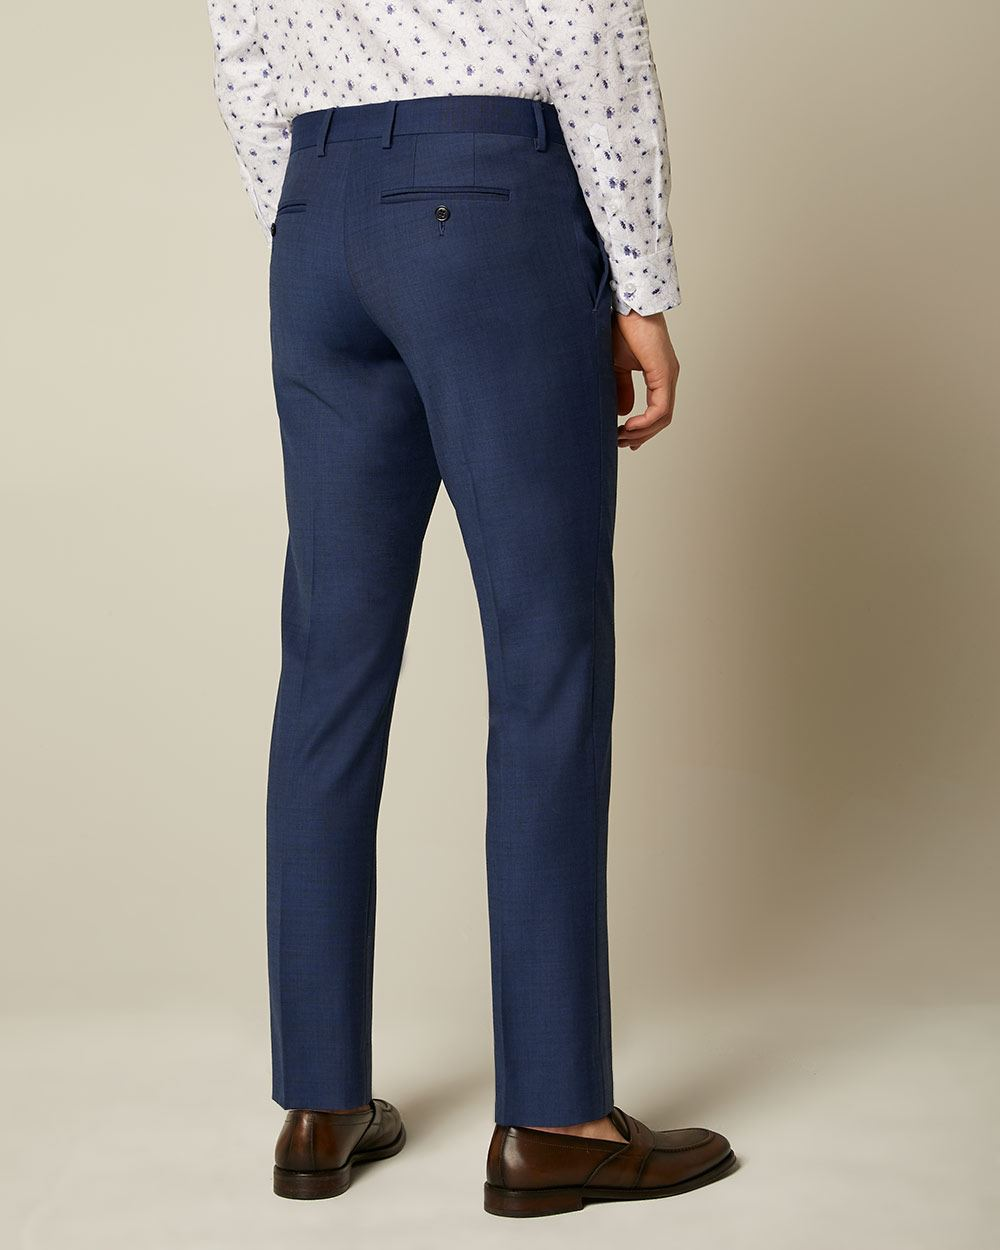 Essential Blue Wool-Blend Suit Pant